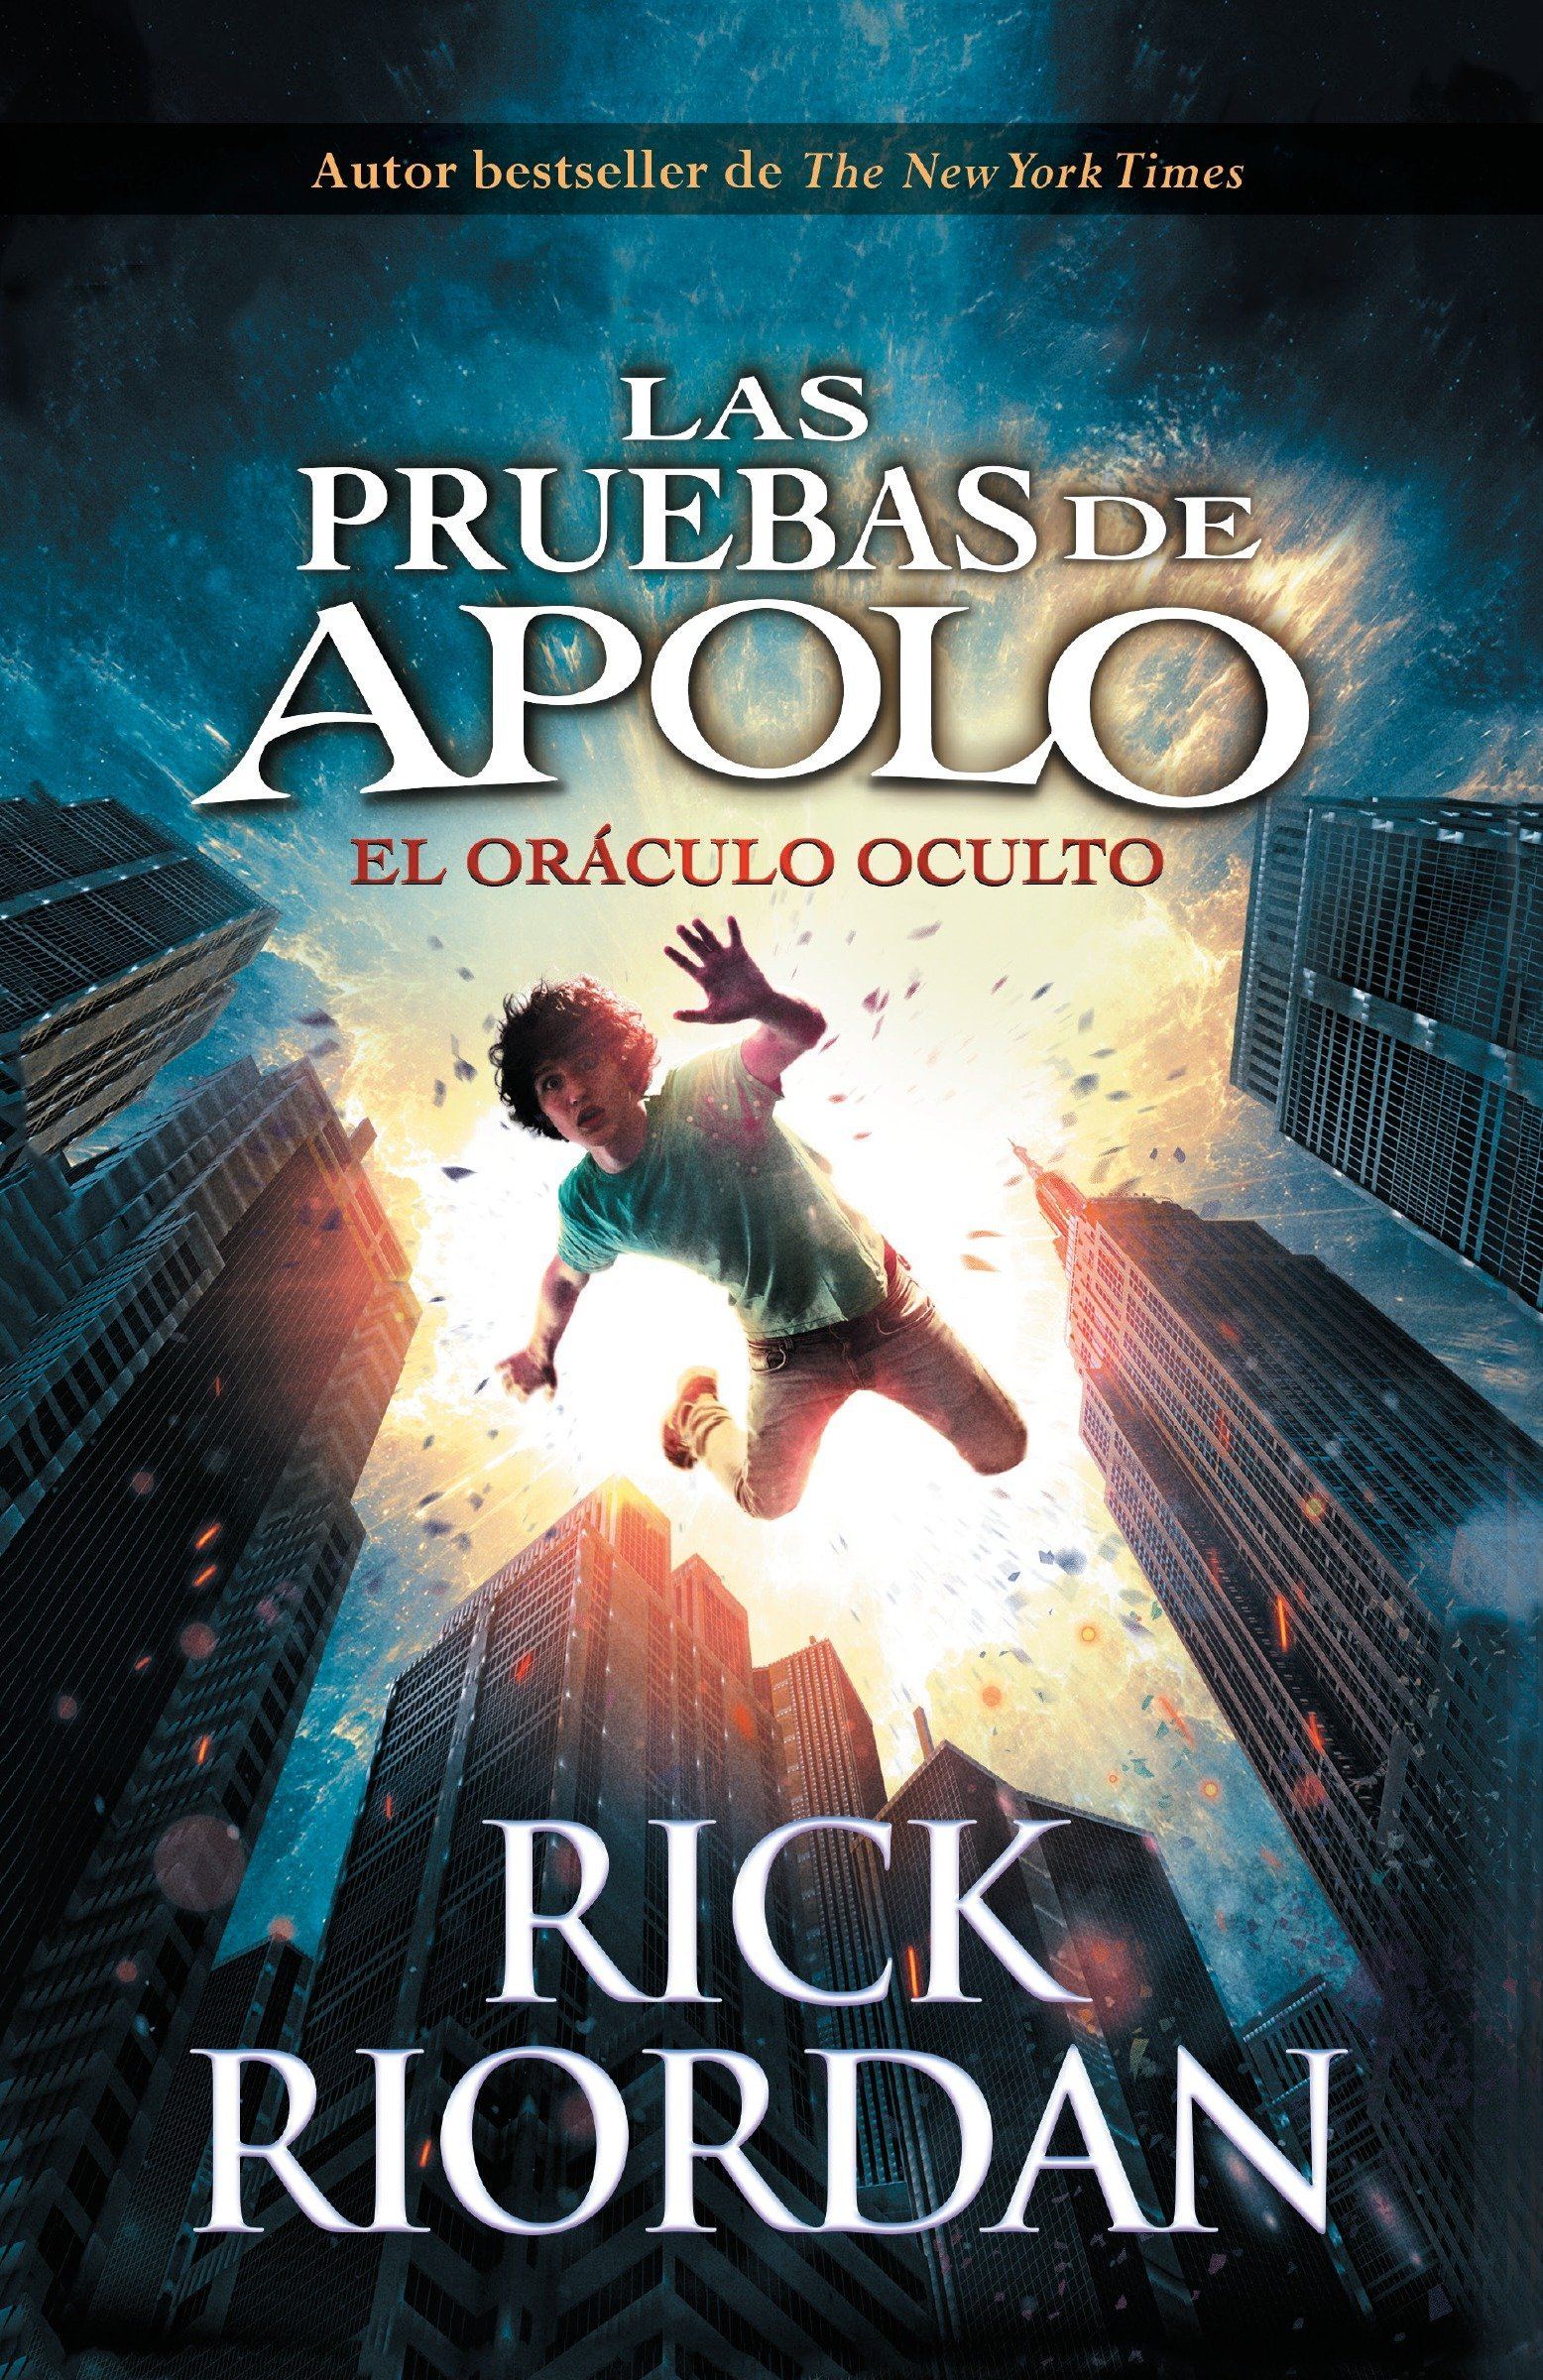 Amazon.com: Las pruebas de Apolo, Libro 1: El oráculo oculto: The Trials of Apollo, Book 1 - Spanish-language Edition (Las pruebas de Apolo/ The Trials of ...